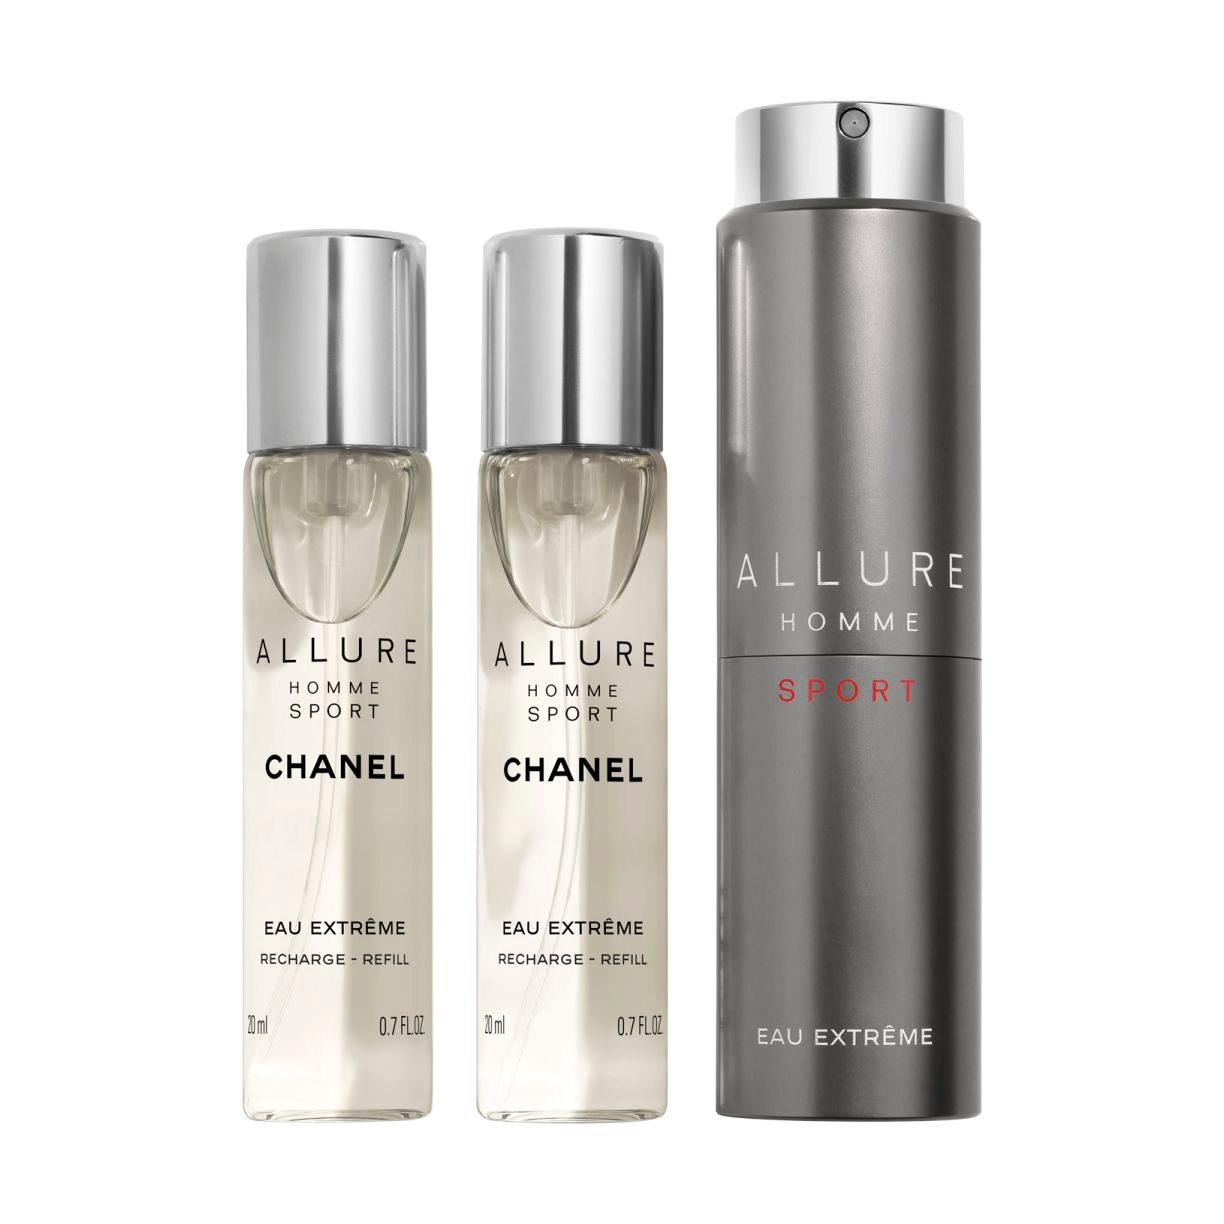 ALLURE HOMME SPORT EAU EXTRÊME REFILLABLE TRAVEL SPRAY